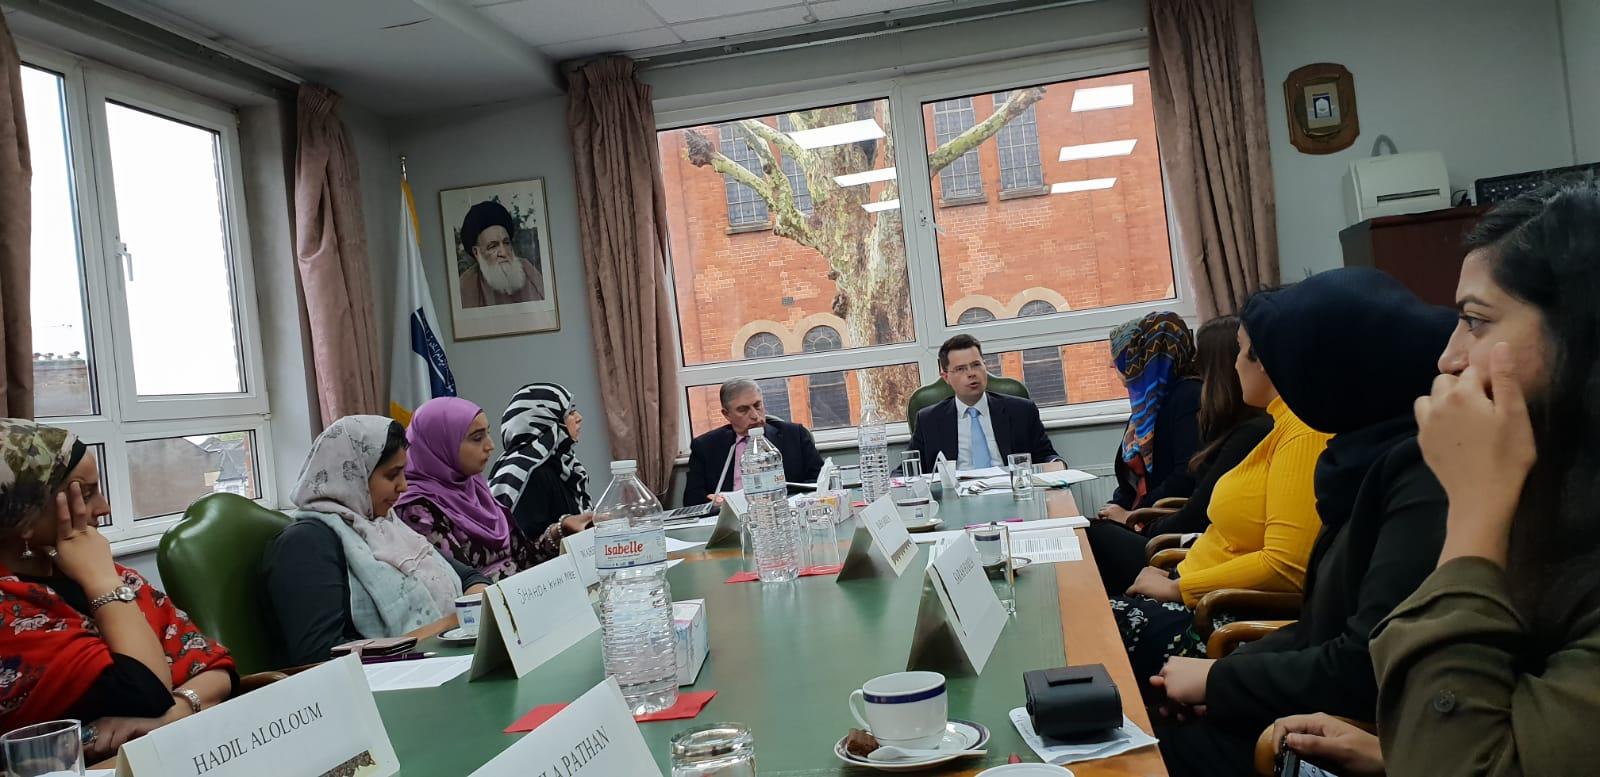 Roundtable on Islamophobia and Hate Crime during National Hate Crime Awareness Week